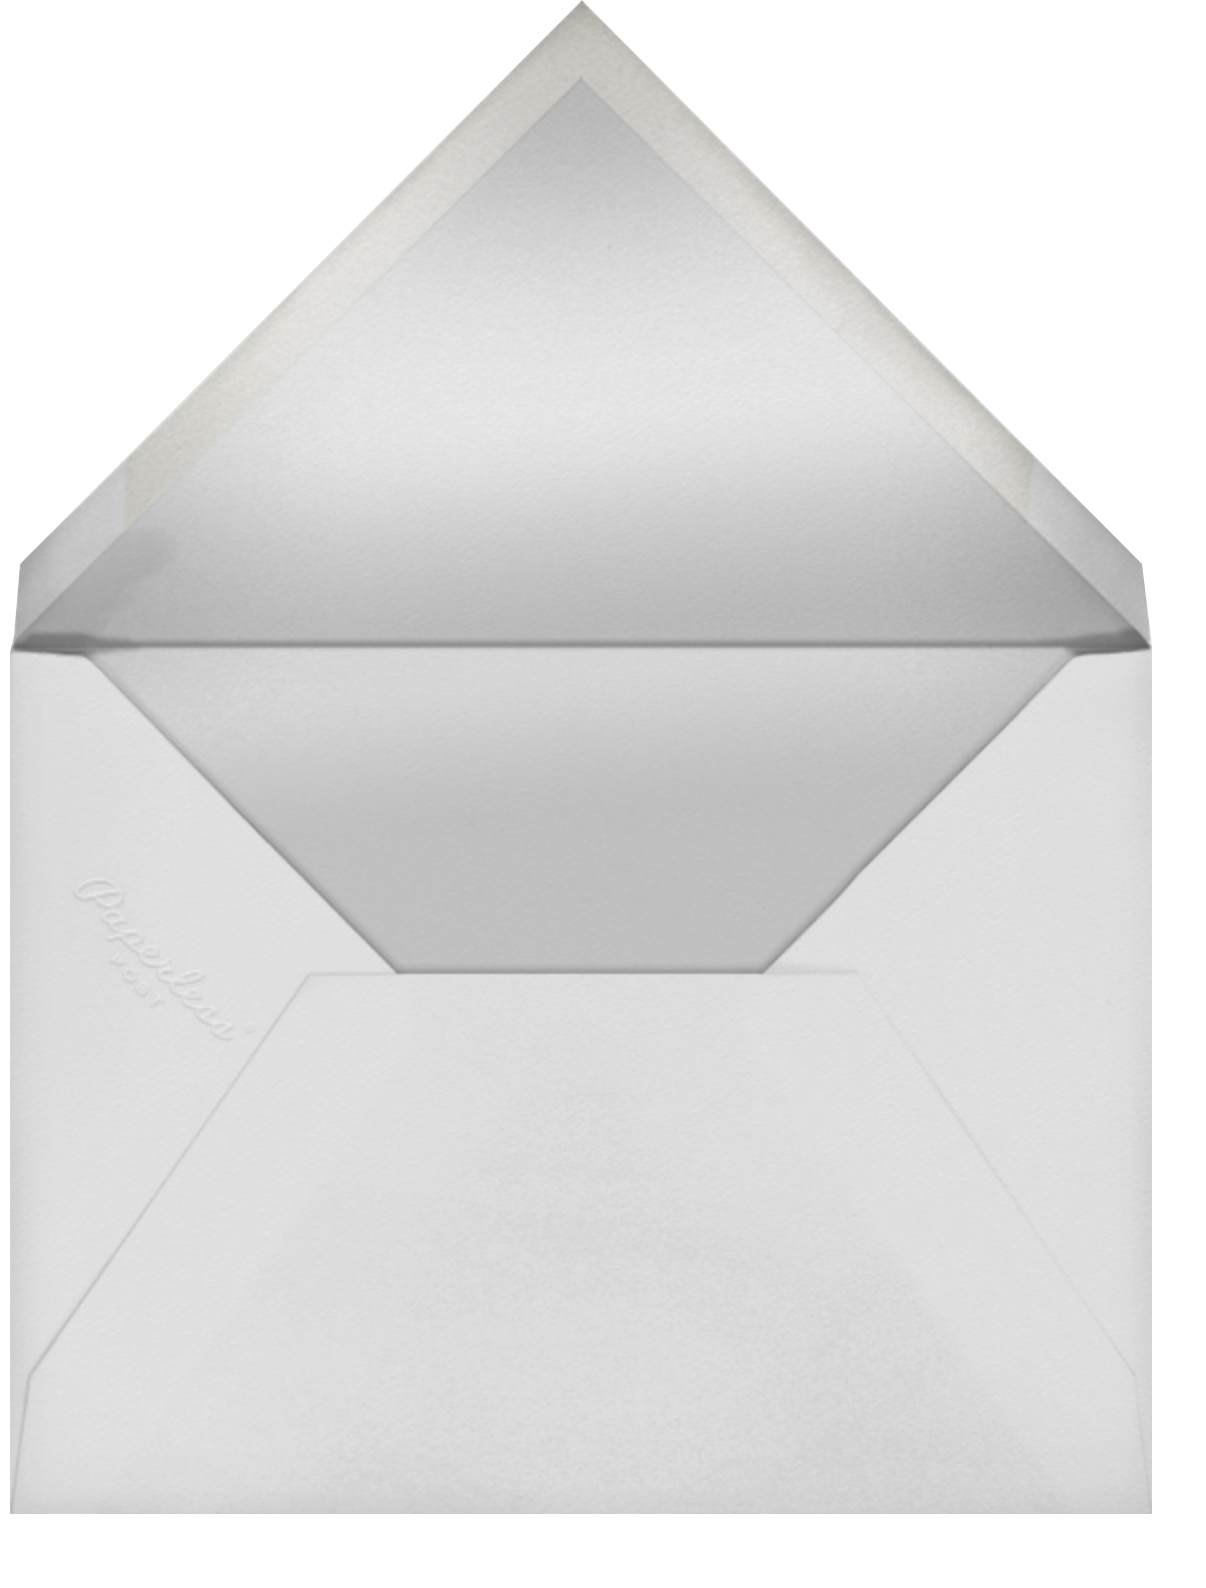 To Have and to Hold - Paperless Post - Moving - envelope back